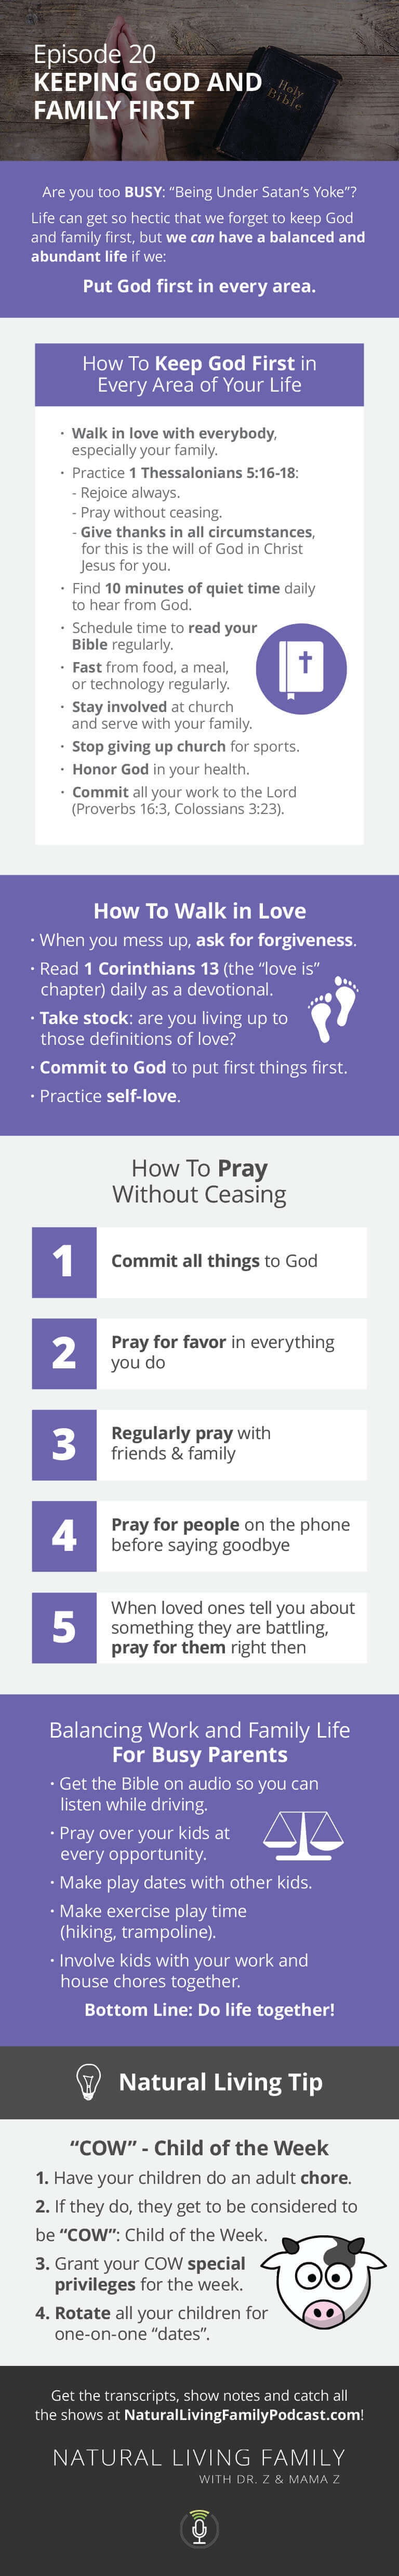 Keeping First Things First Making God and Your Family a Priority - Podcast Episode 20